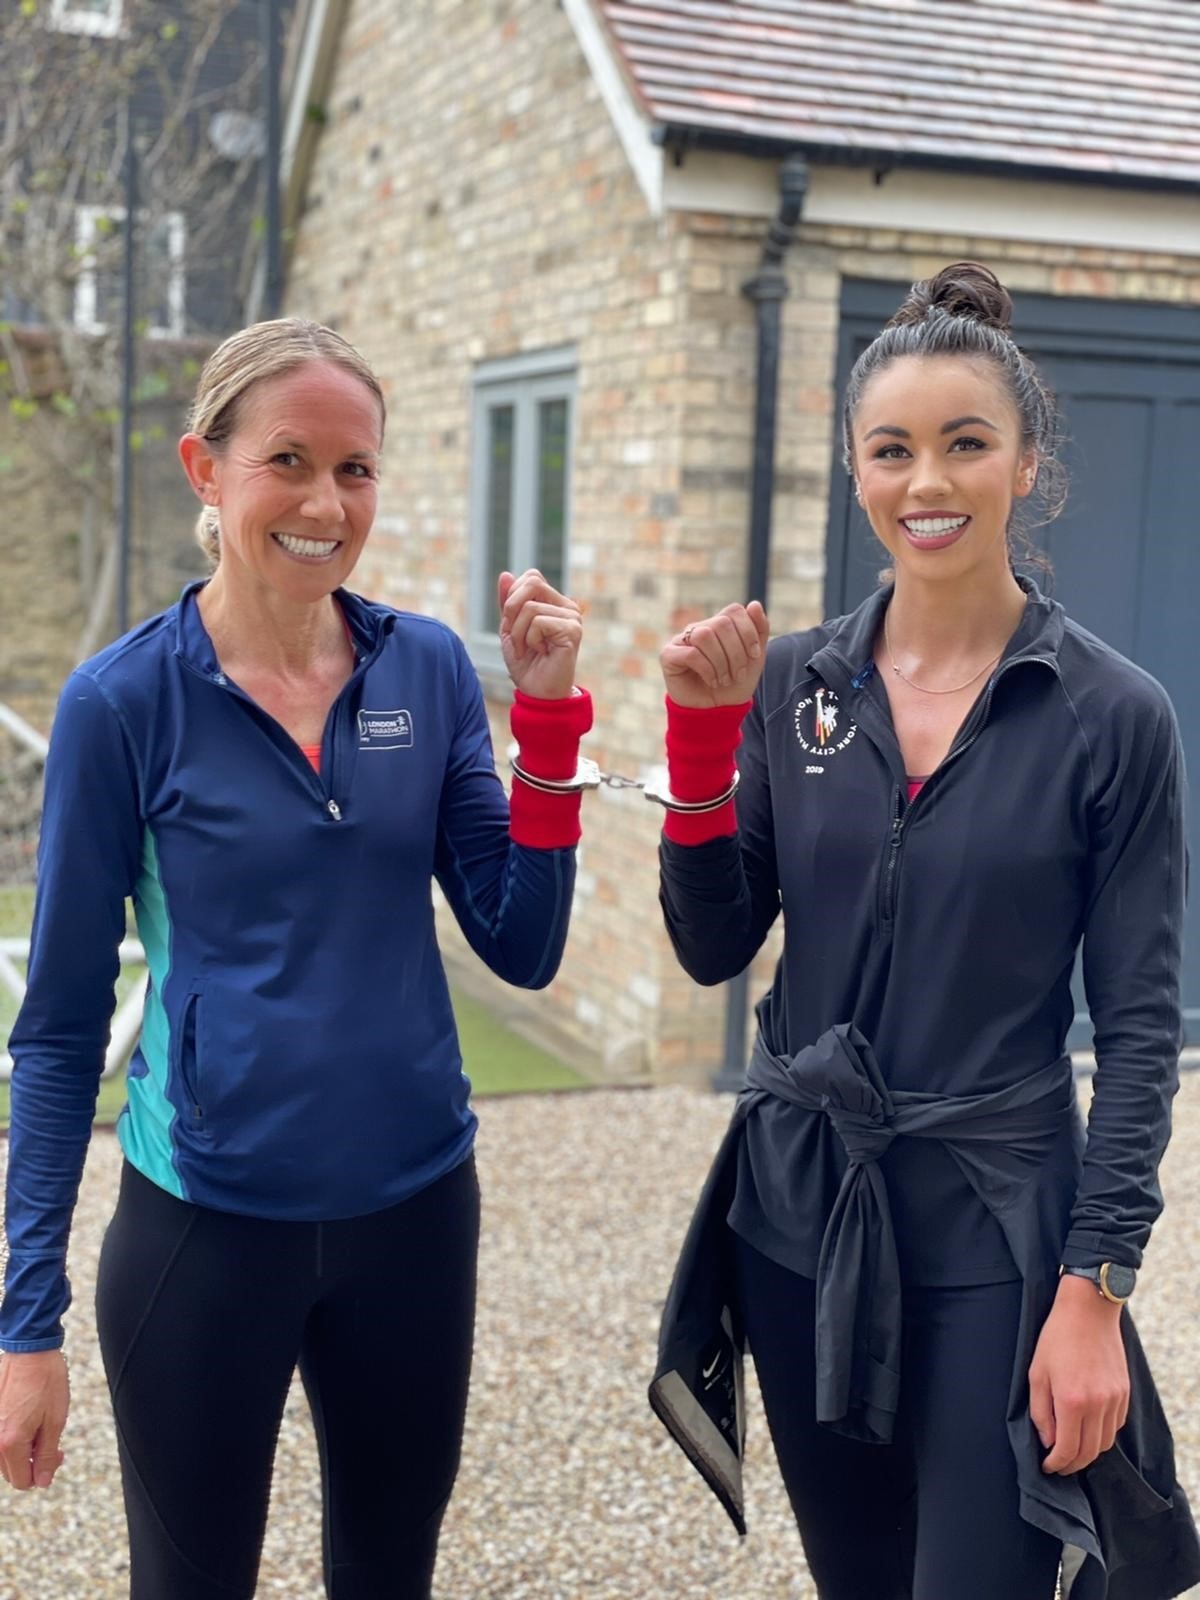 Kerry and Troi setting off on a training run